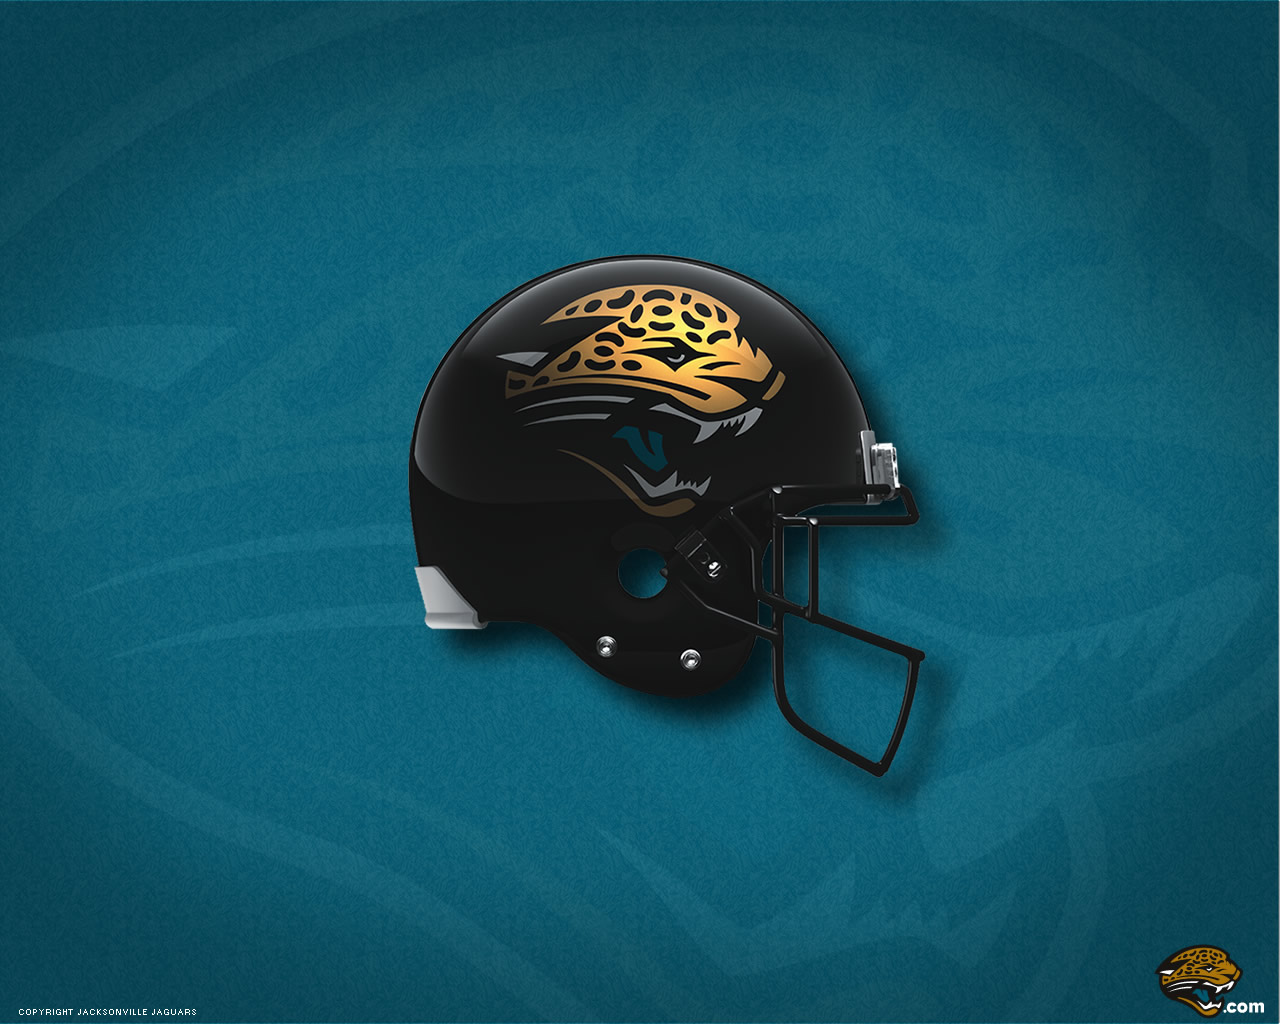 nfl computer backgrounds all related wallpapers nfl jacksonville 1280x1024